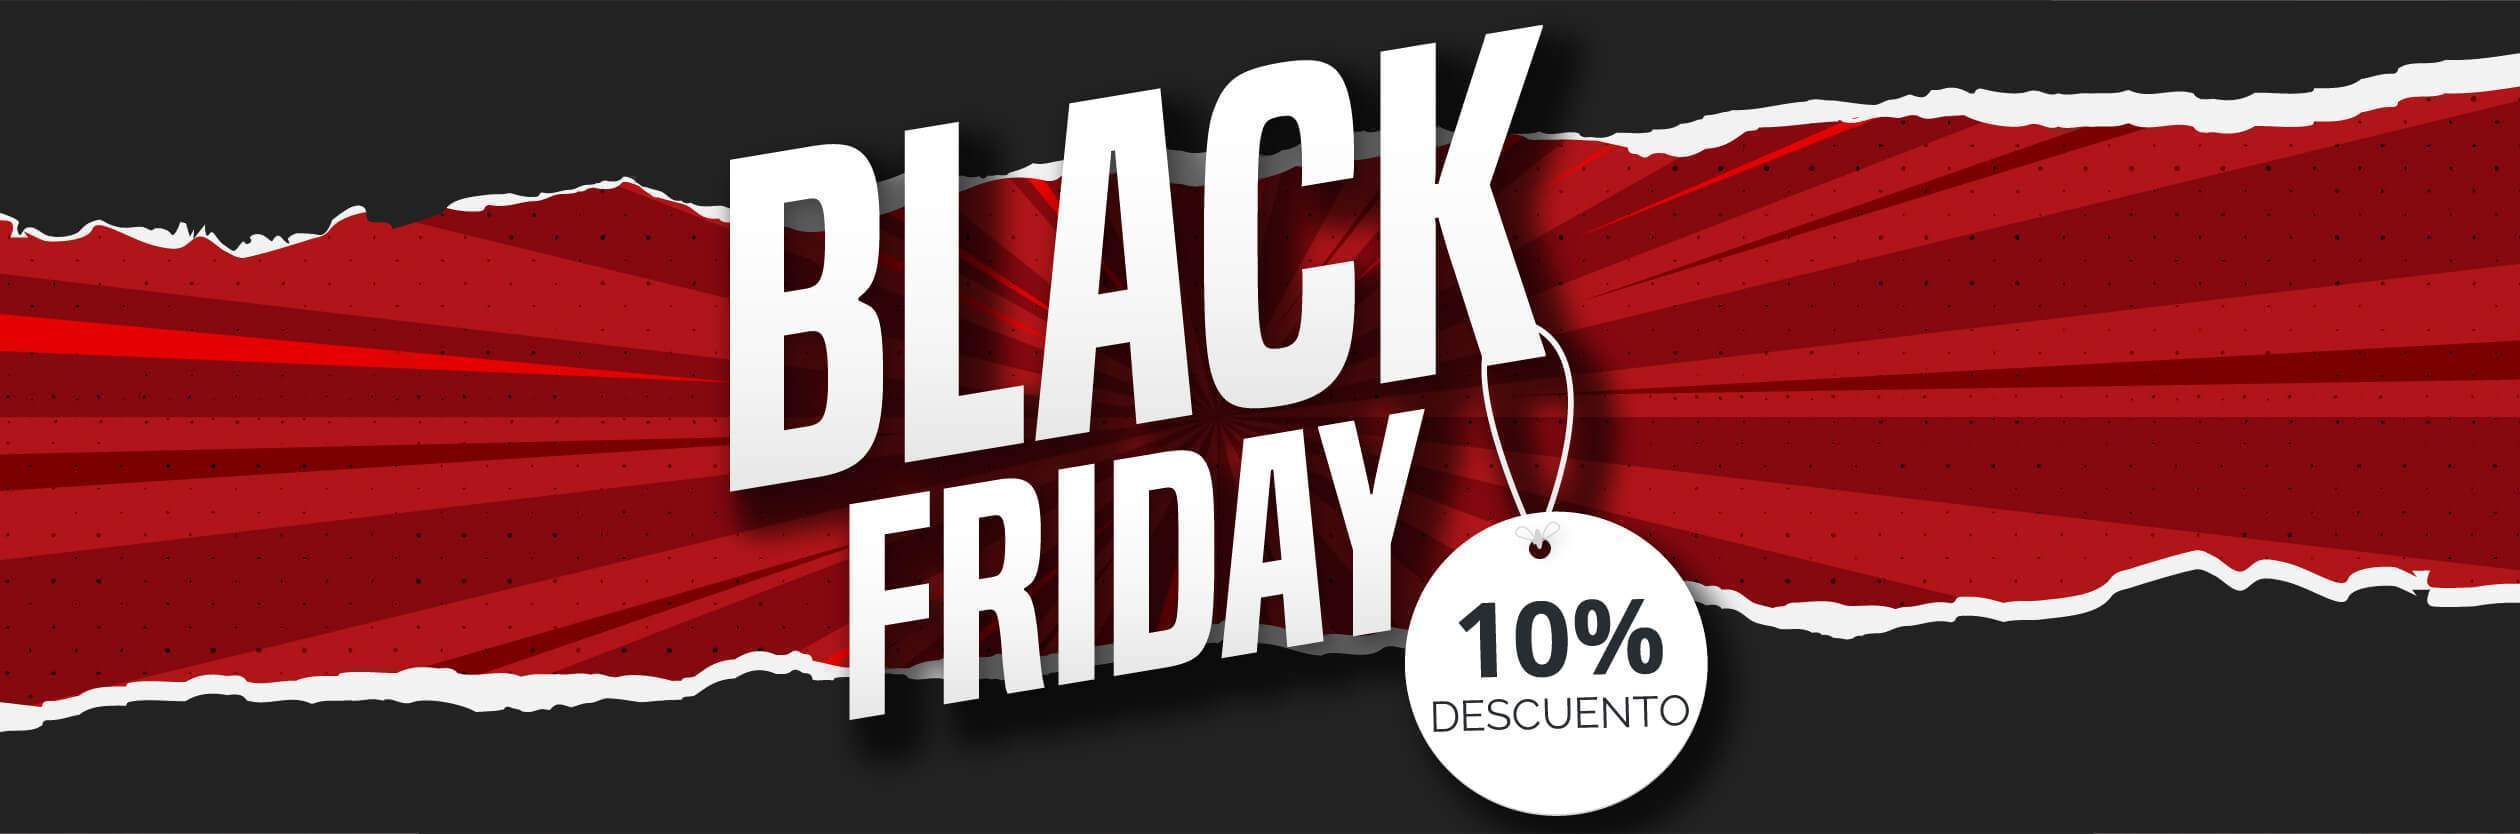 Descuentos black Friday